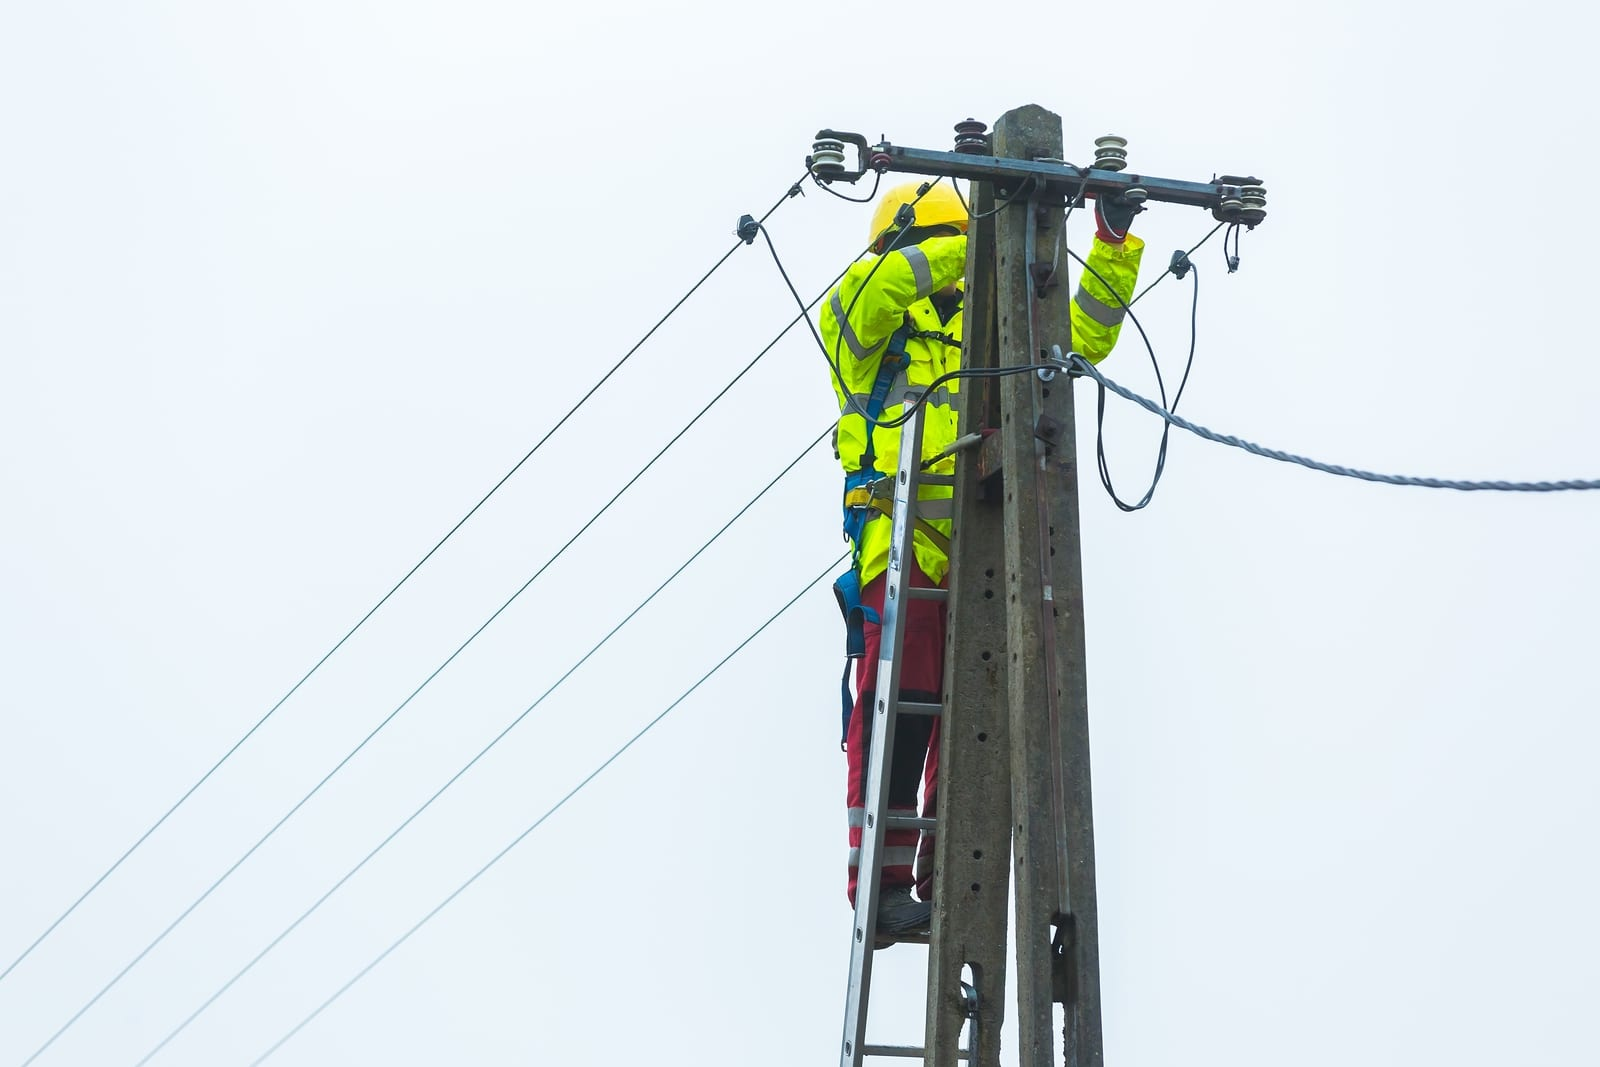 Ameren Illinois Unveils Two-Year Electric Grid Upgrade in Jersey, Macoupin Counties